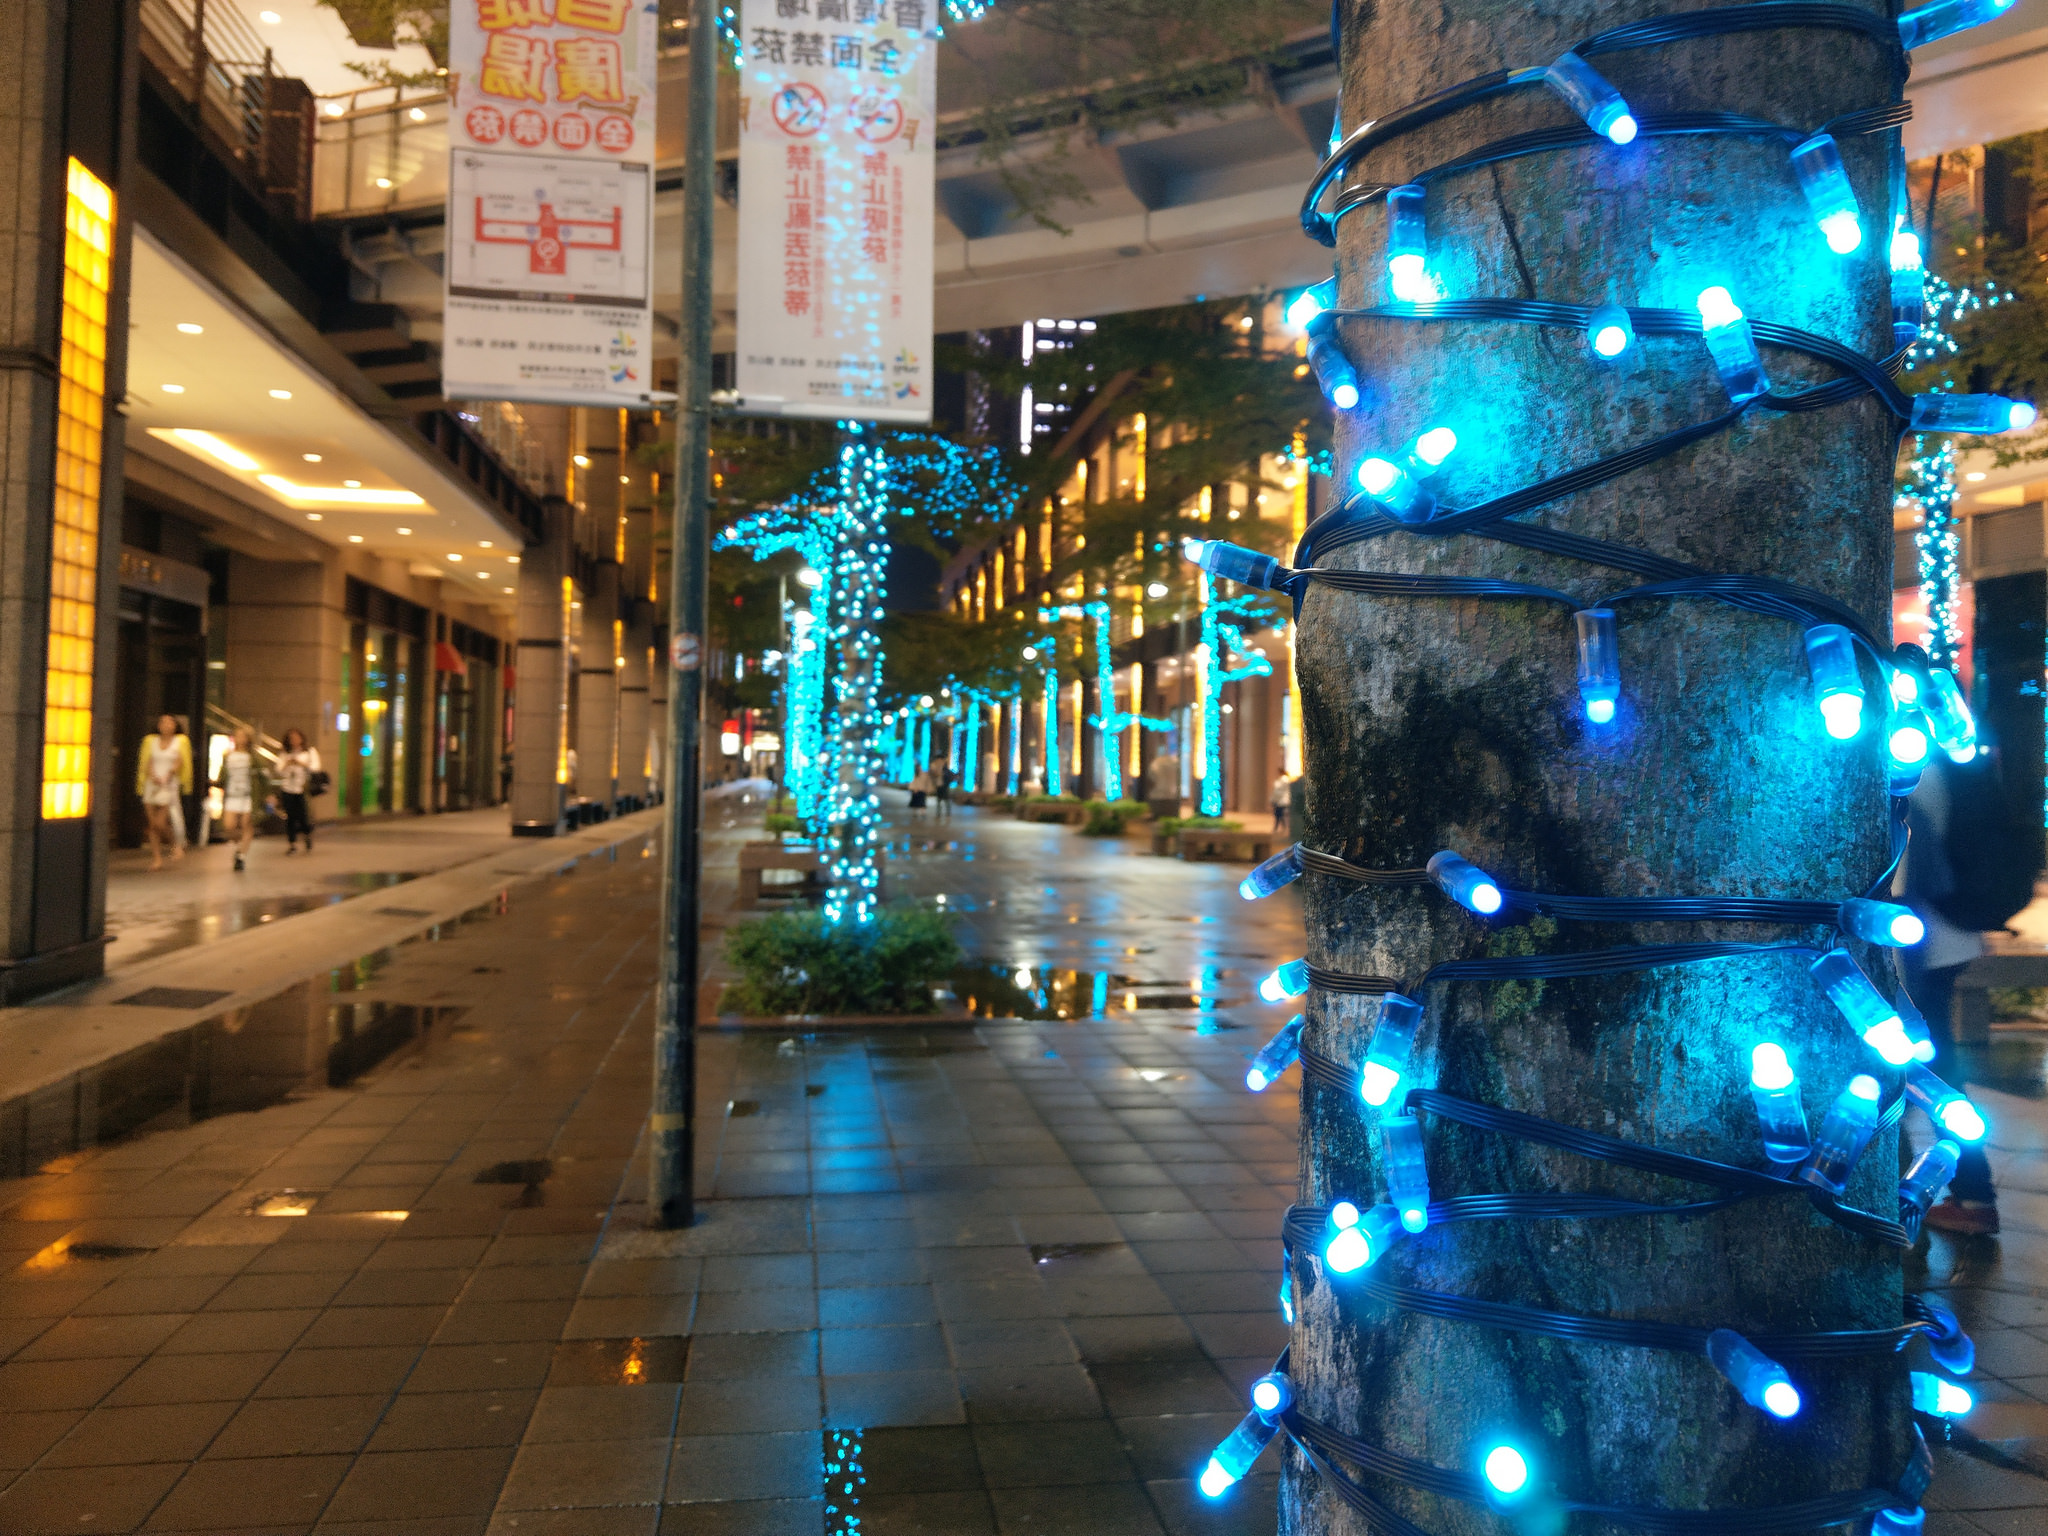 HTC-U11-night-camera-test-photos (3)